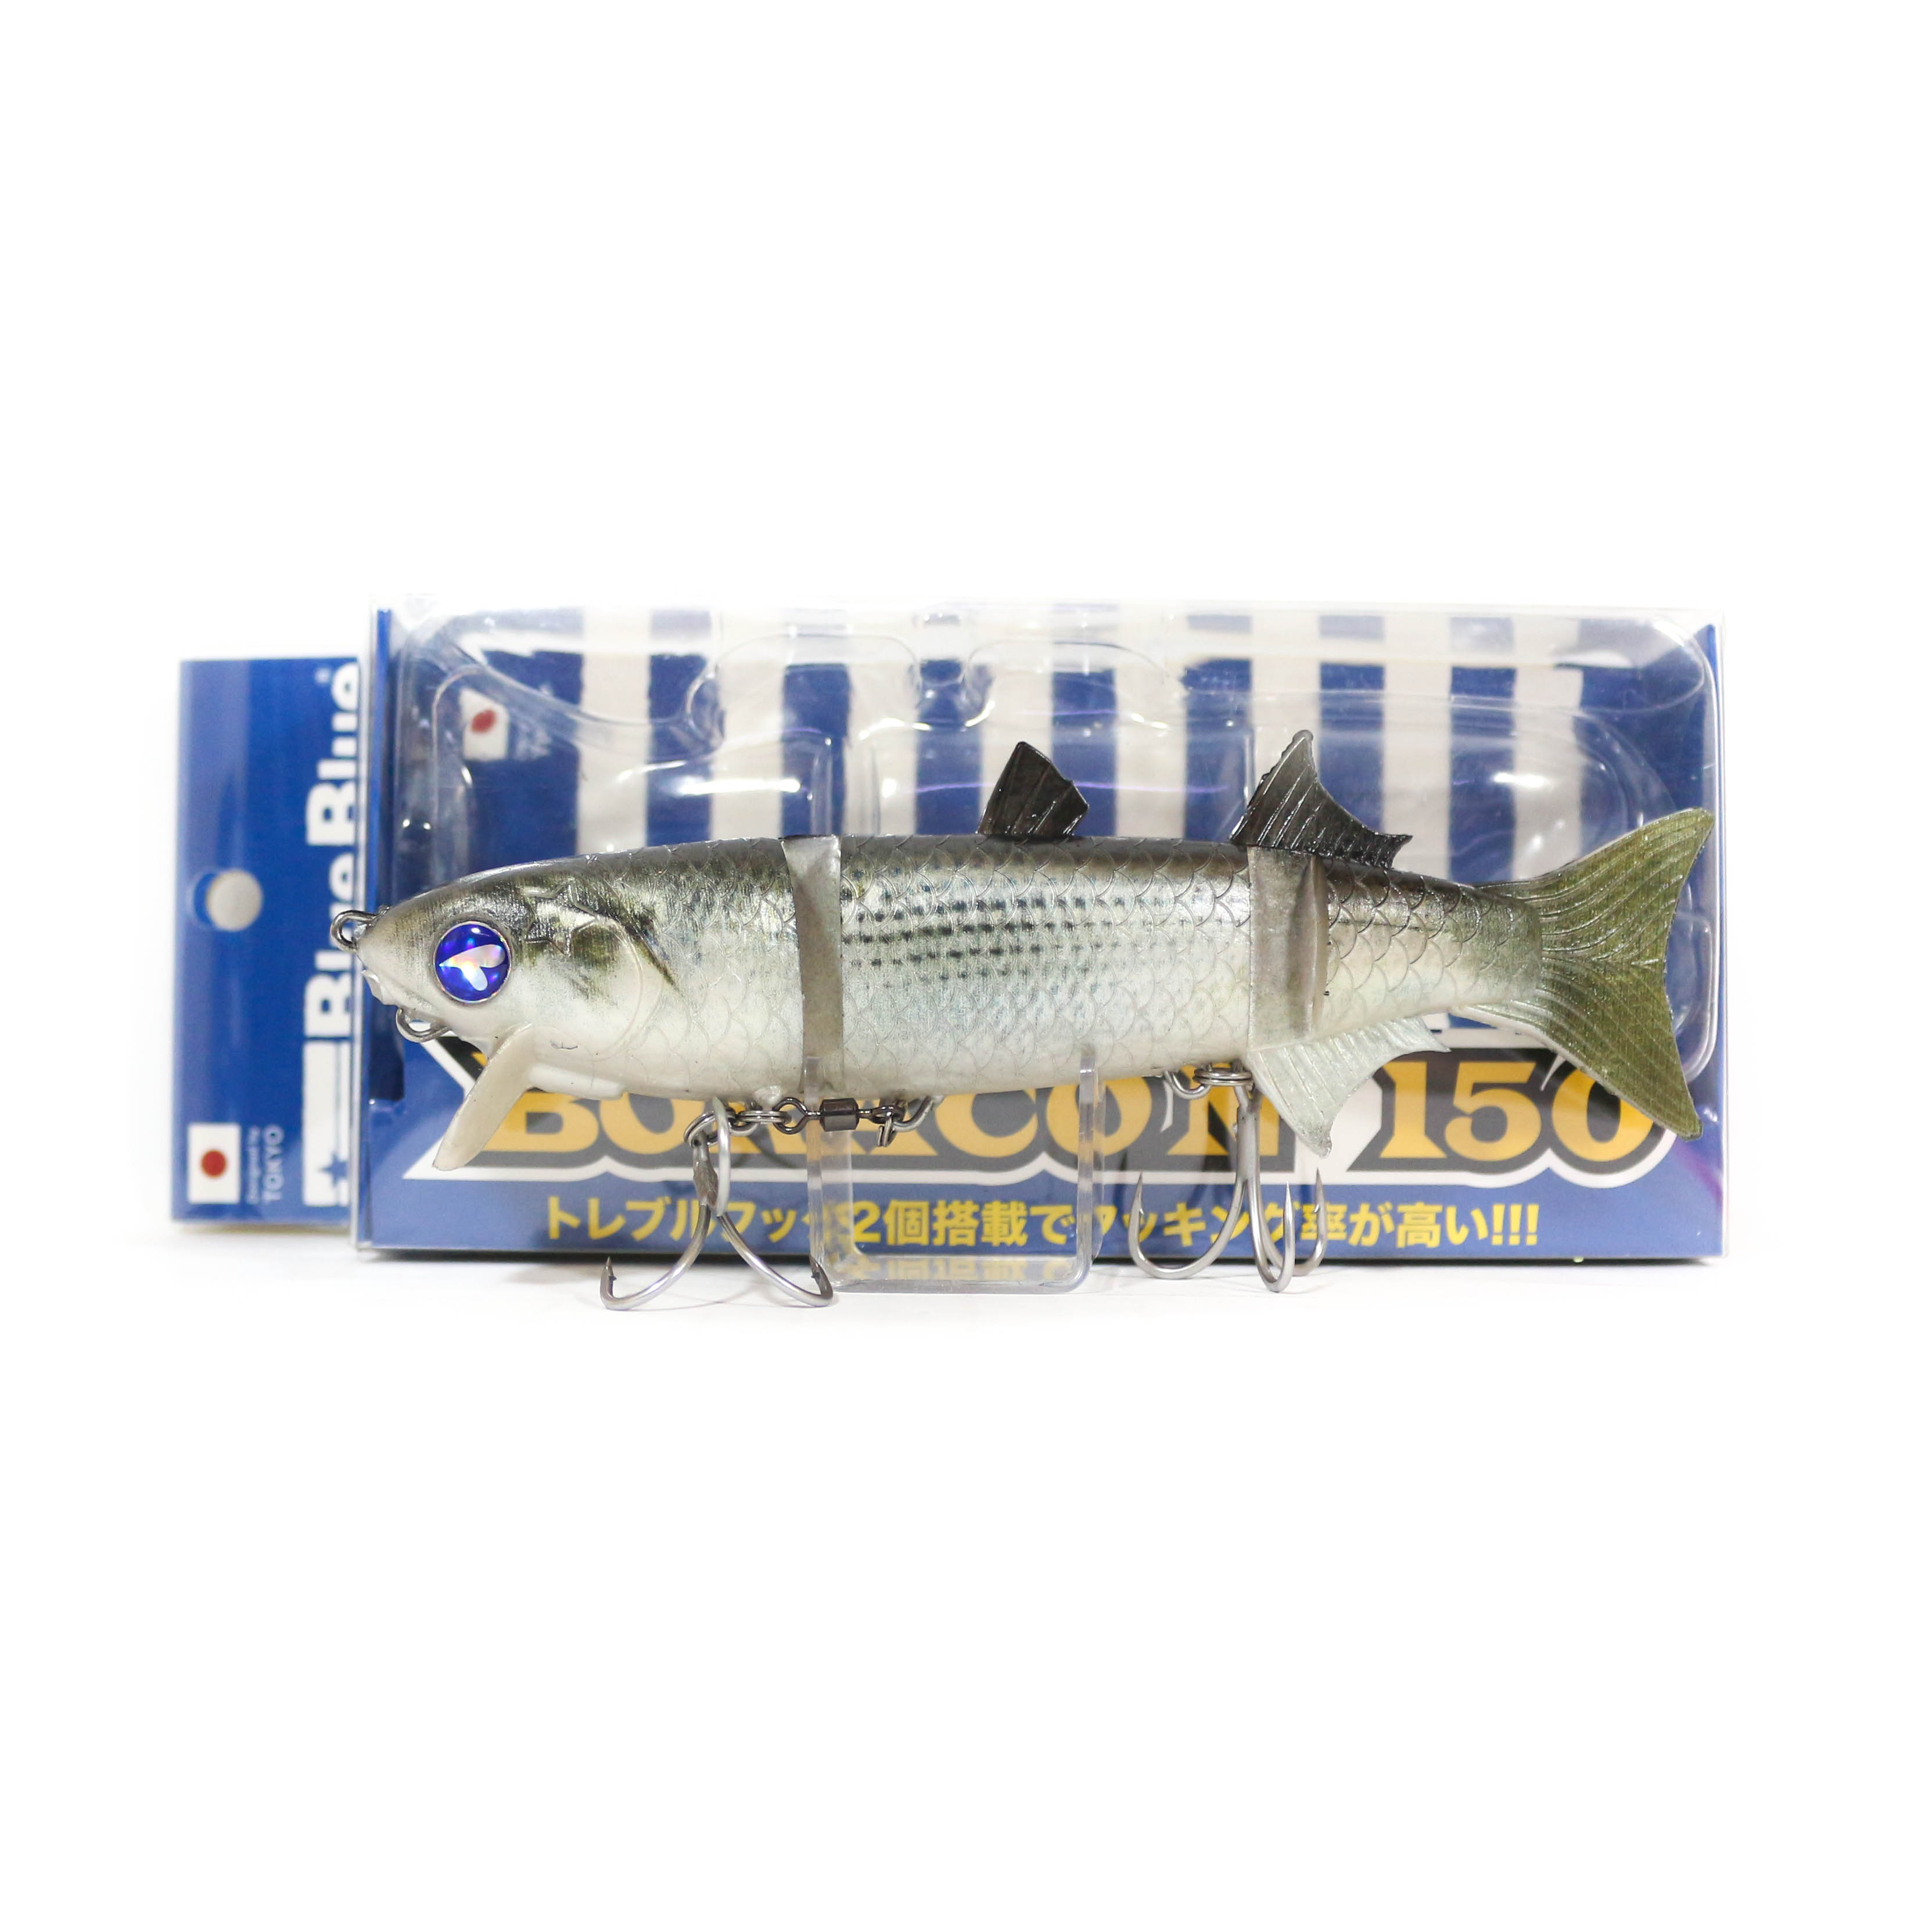 Blue Blue Boracon 150 48 grams Floating Lure 08 (1764)